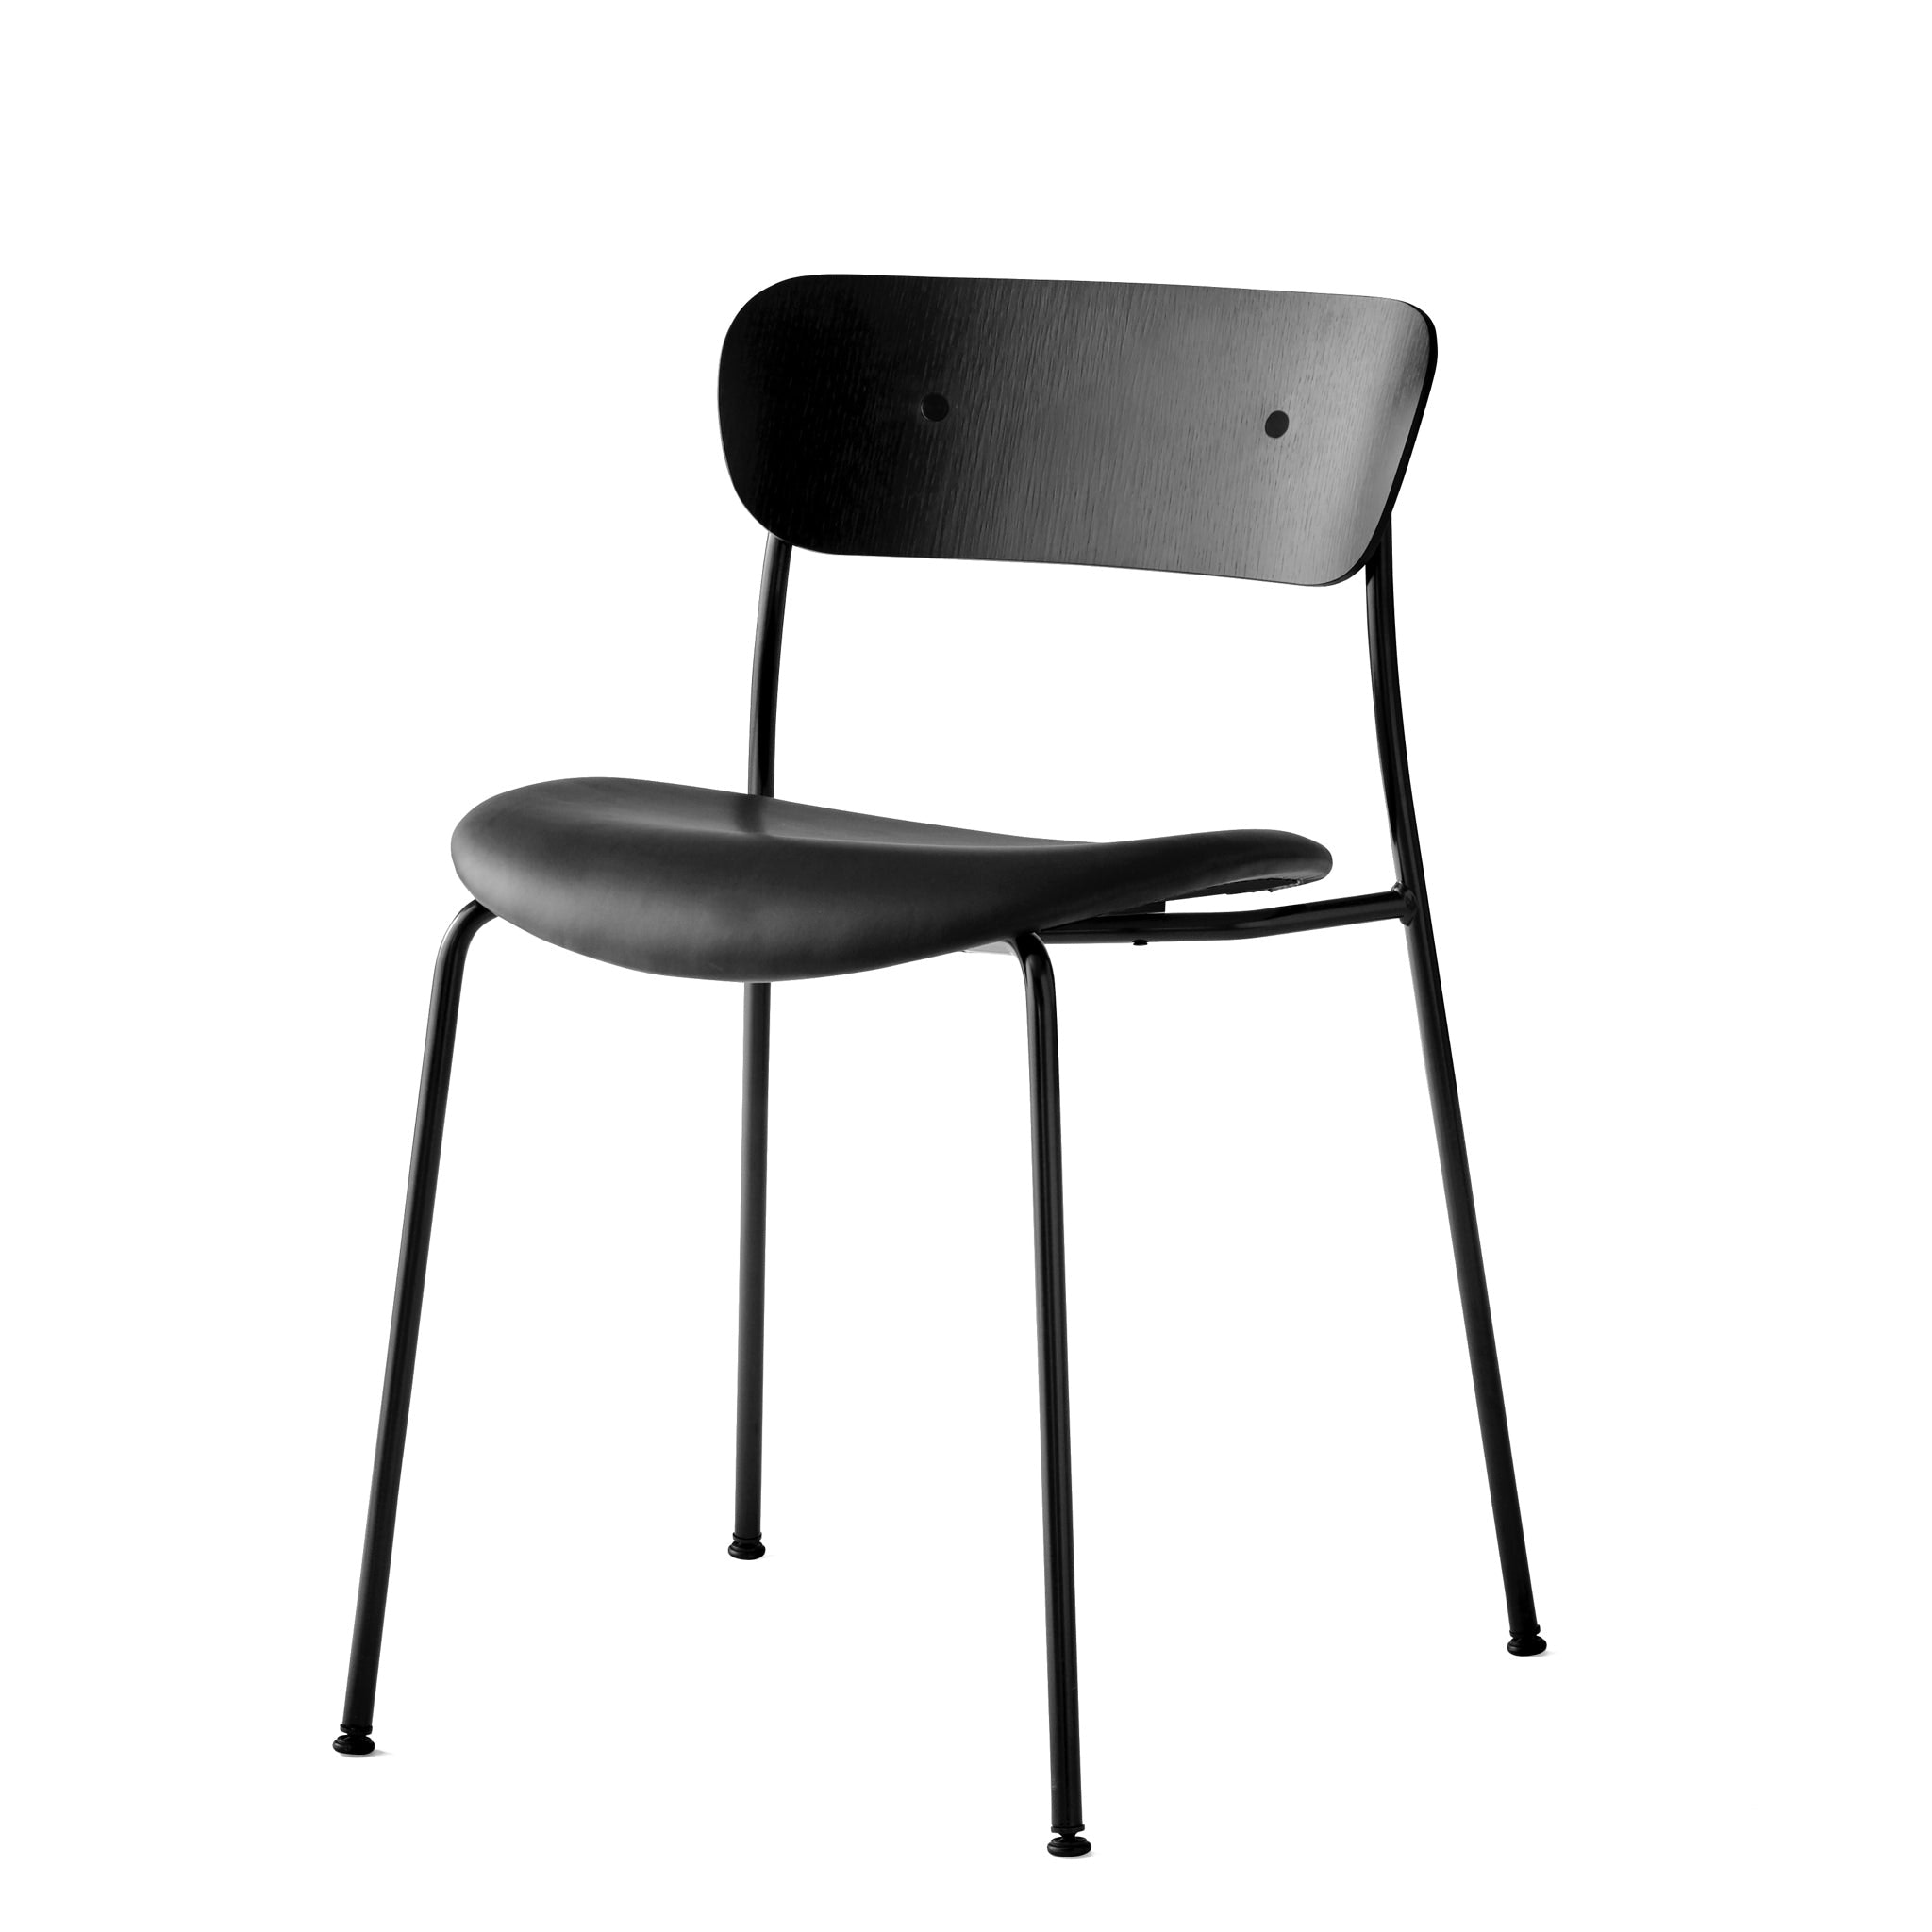 AV3 Pavilion Chair by &Tradition